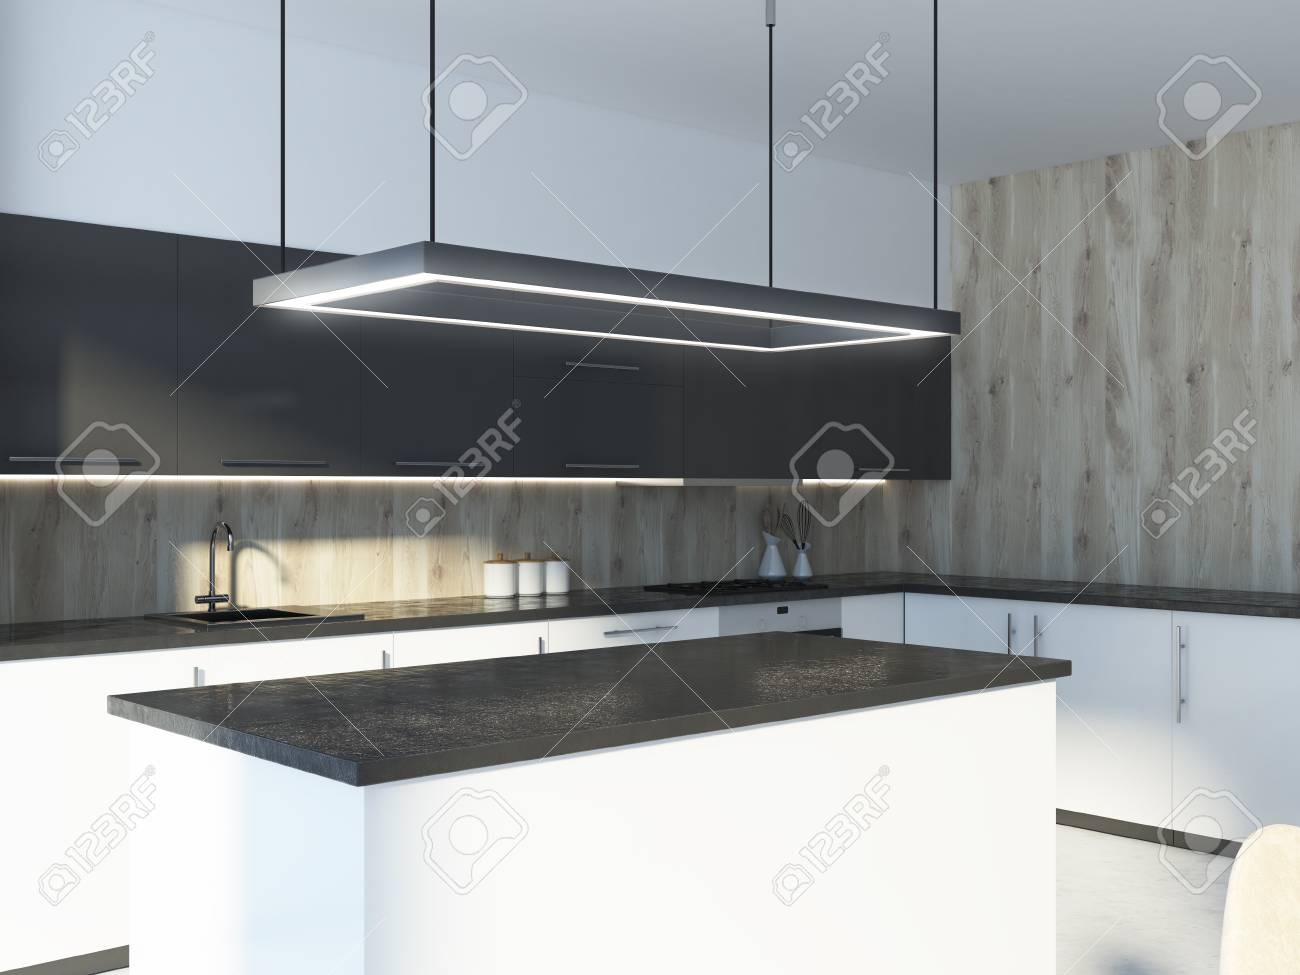 Black Kitchen Island Standing Near White And Gray Countertops In A